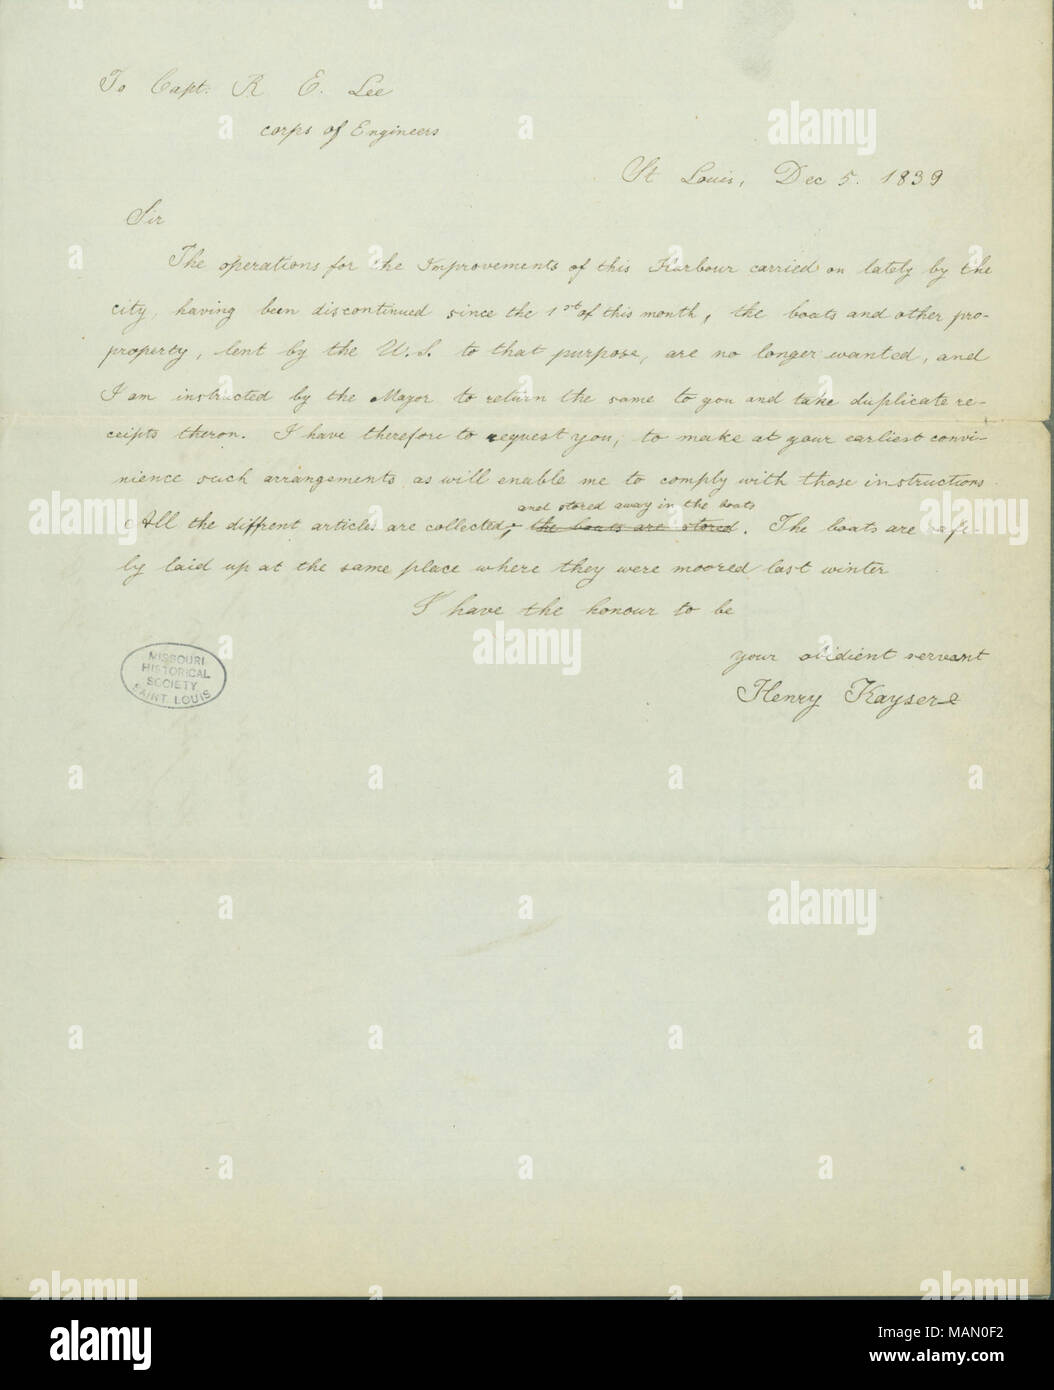 Notifies him that the boats lent by the U. S. government are no longer needed and will be returned to Lee. Title: Letter signed Henry Kayser to Robert E. Lee, December 5, 1839  . 5 December 1839. Kayser, Henry, 1811-1884 - Stock Image